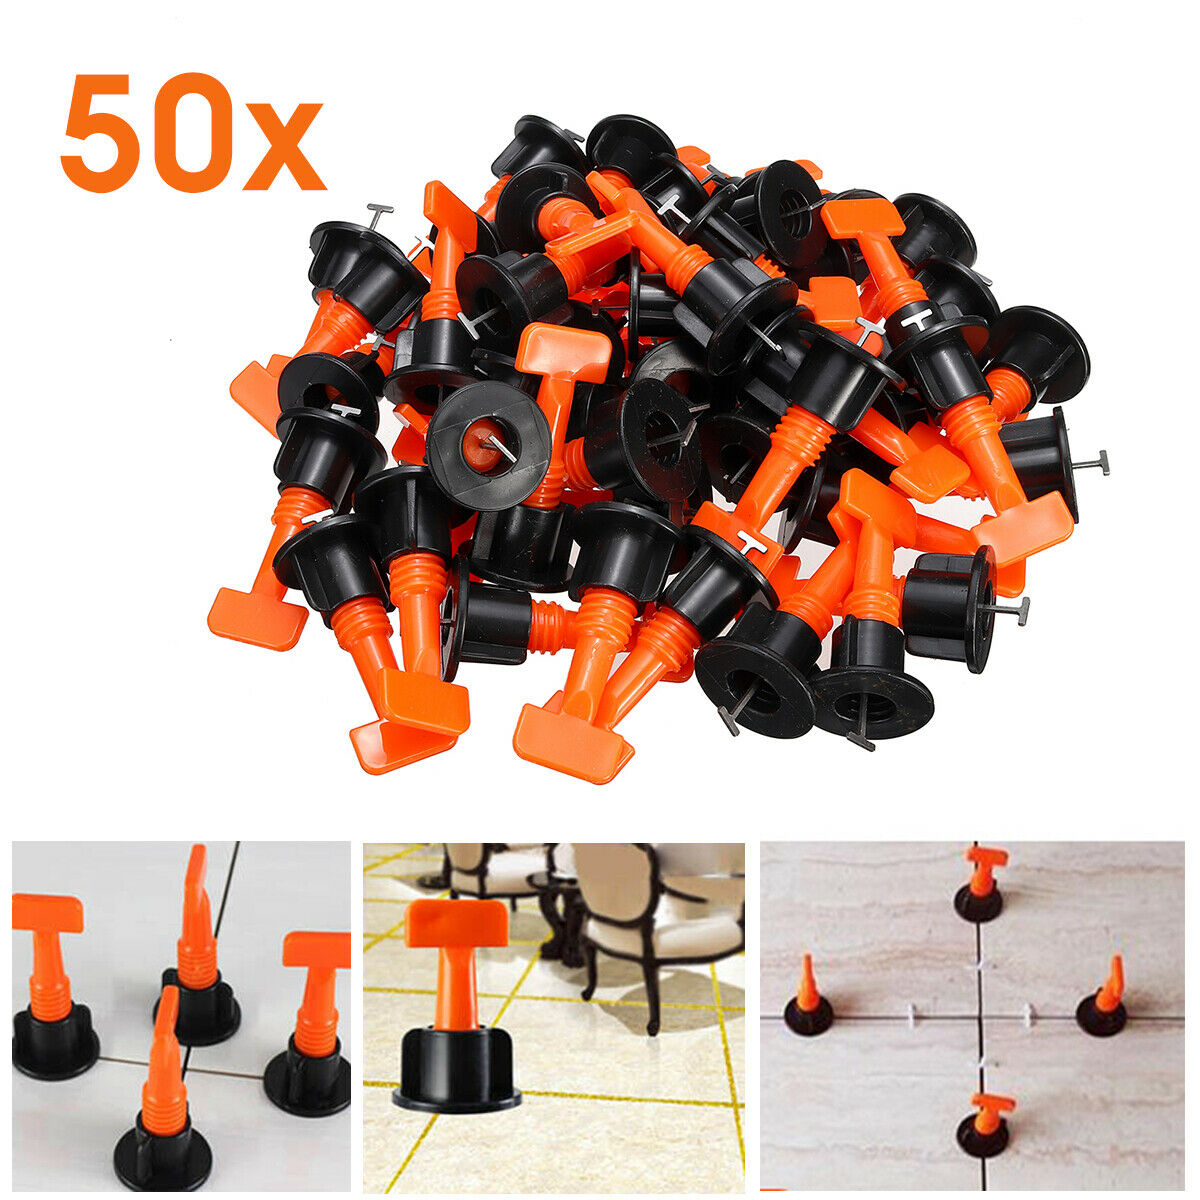 50 200X Flat Ceramic Floor Wall Construction Tools Reusable Tile Leveling System